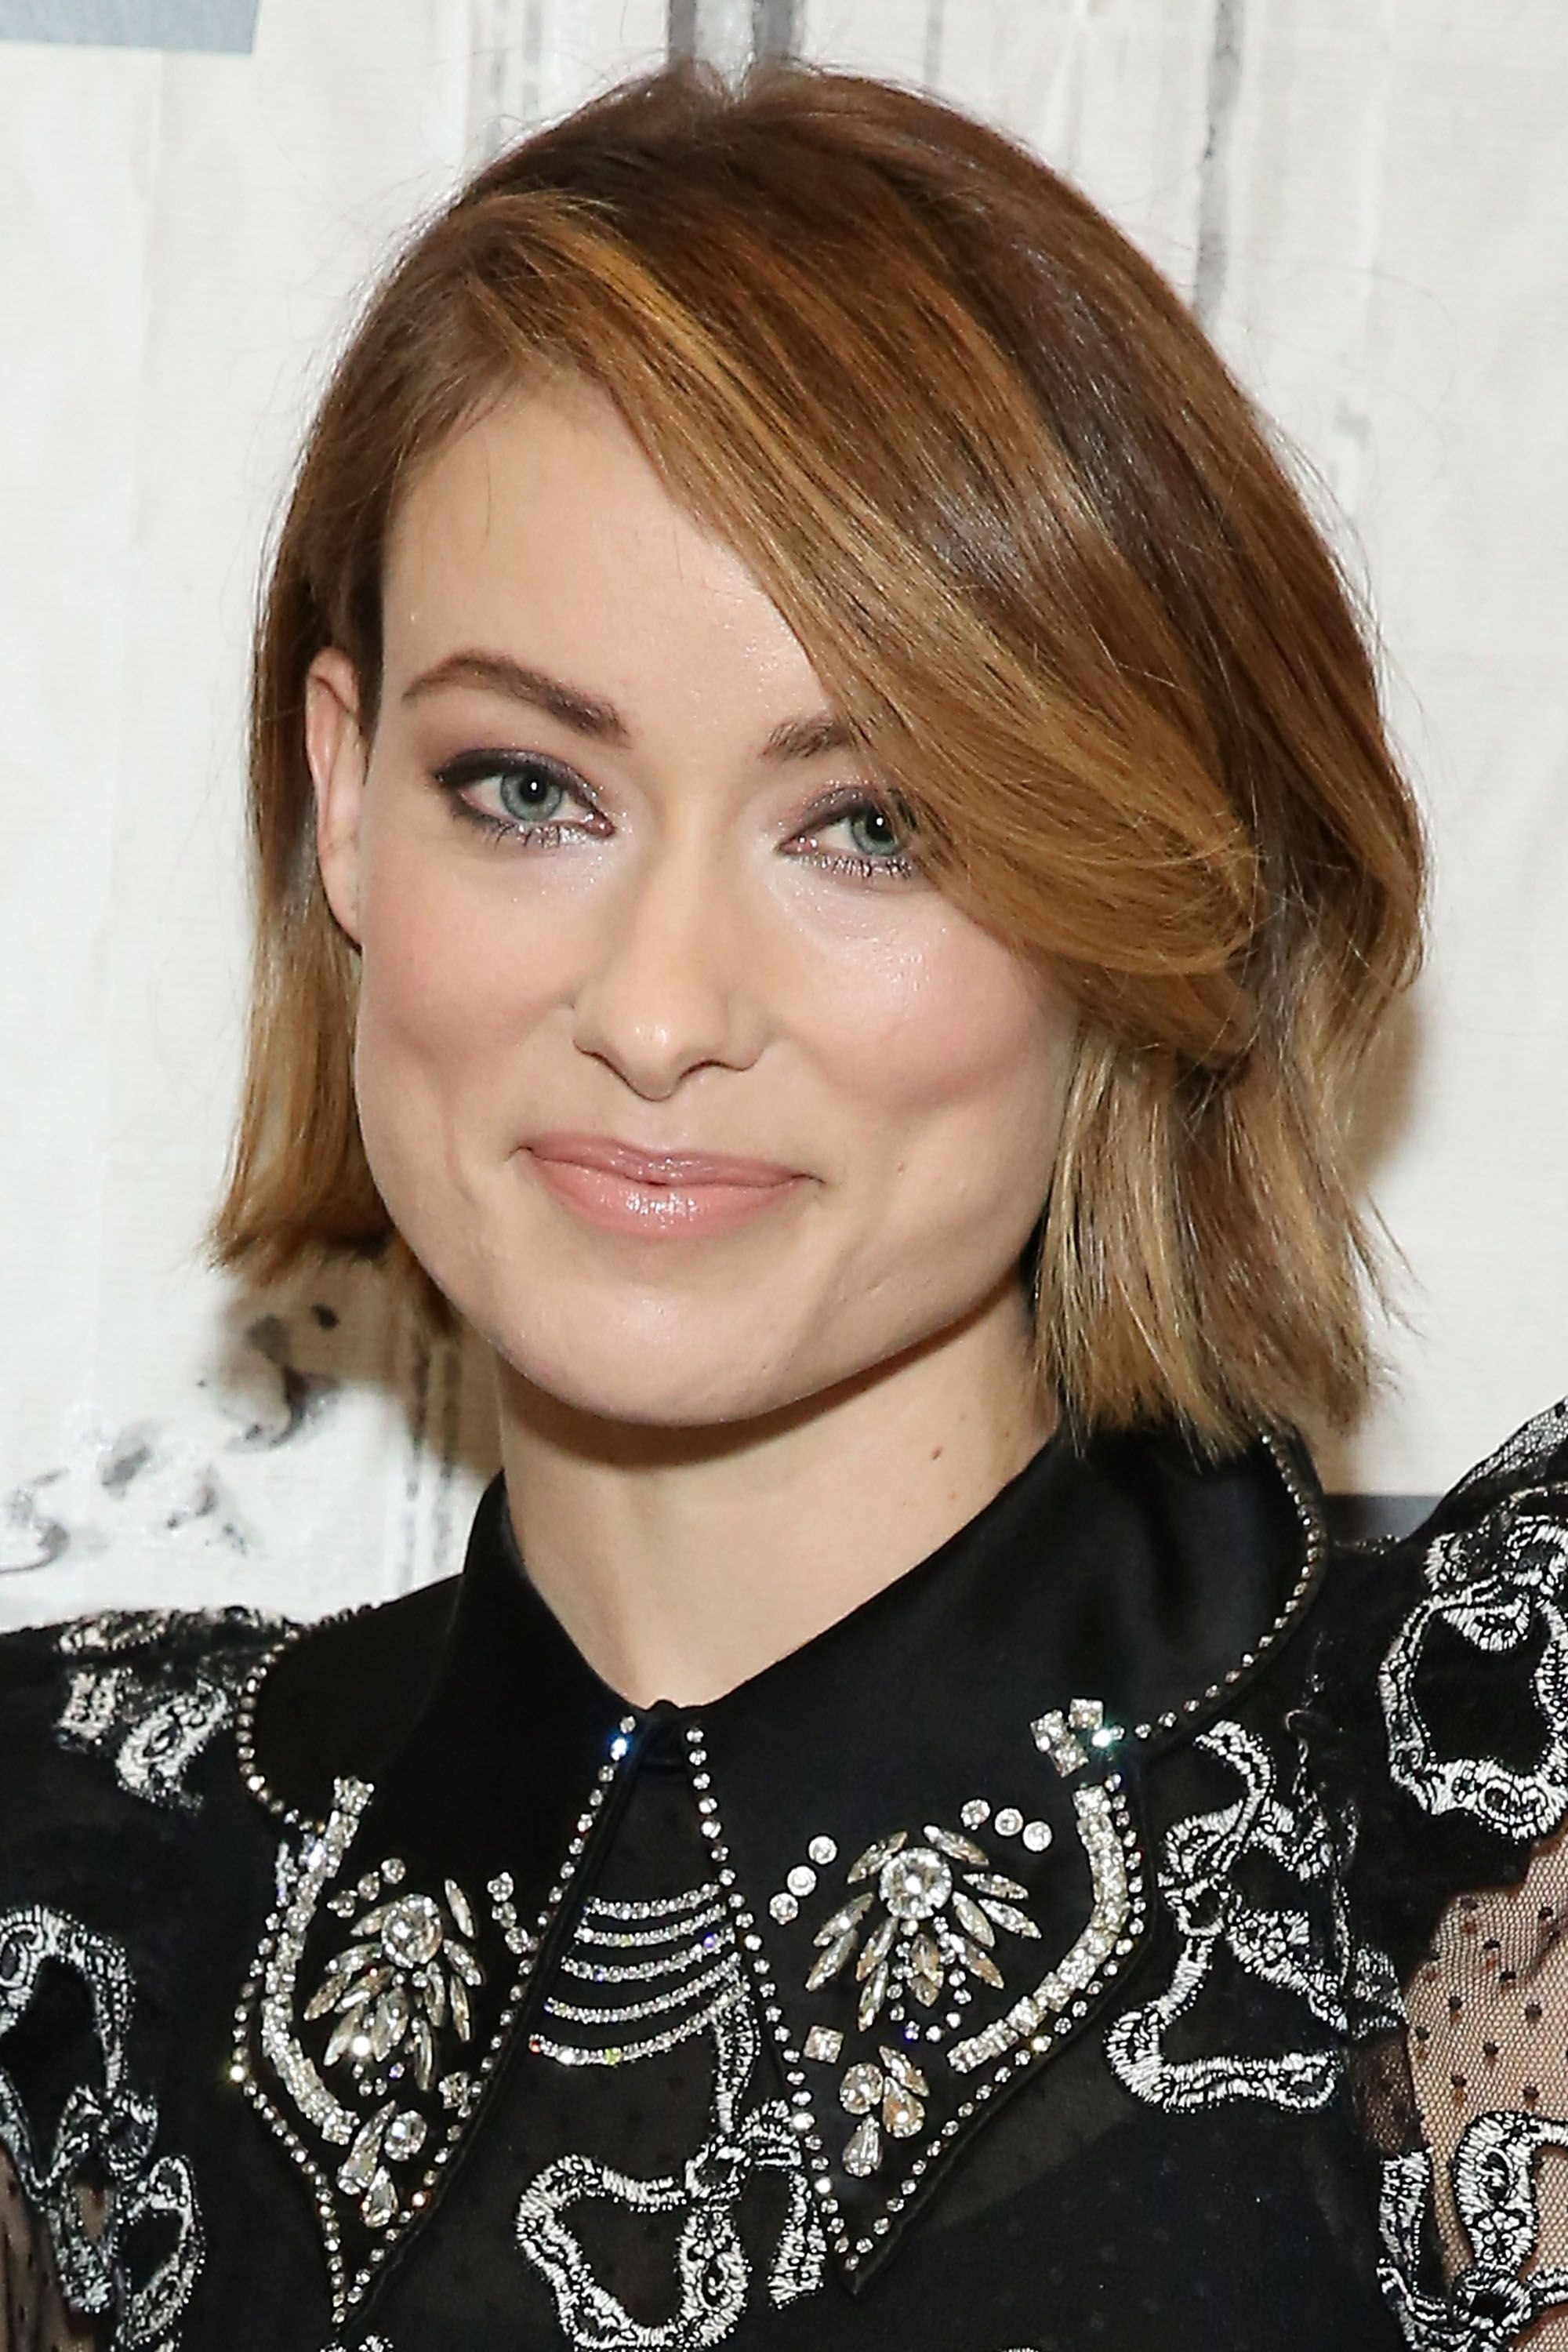 The 7 Best Hairstyles For Square Face Shapes In Short Haircuts For Square Face (View 18 of 25)